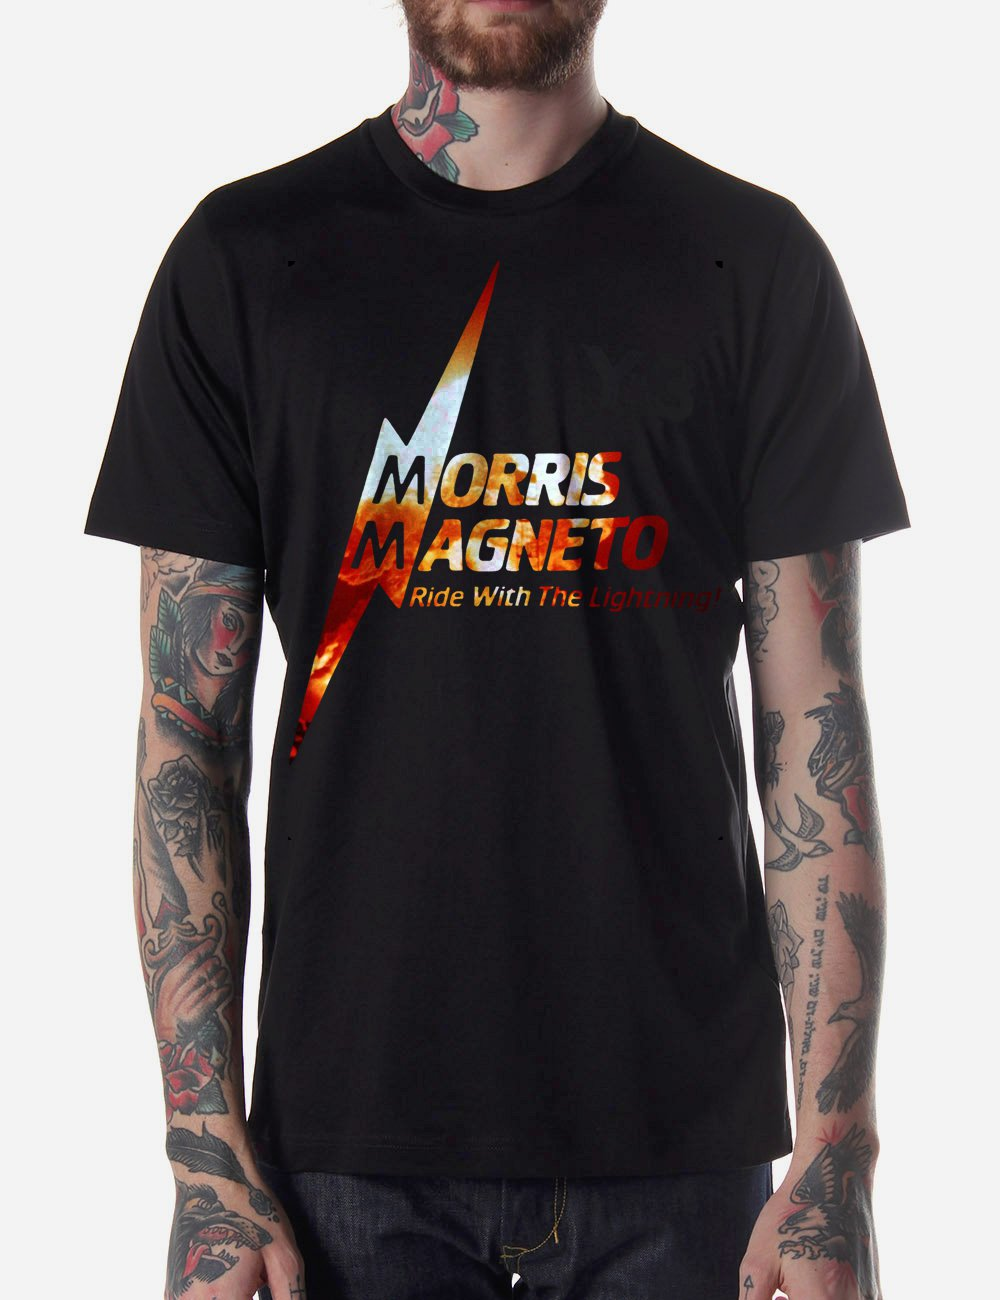 Black Men Tshirt MORRIS MAGNETOS BOLT Black Tshirt For Men